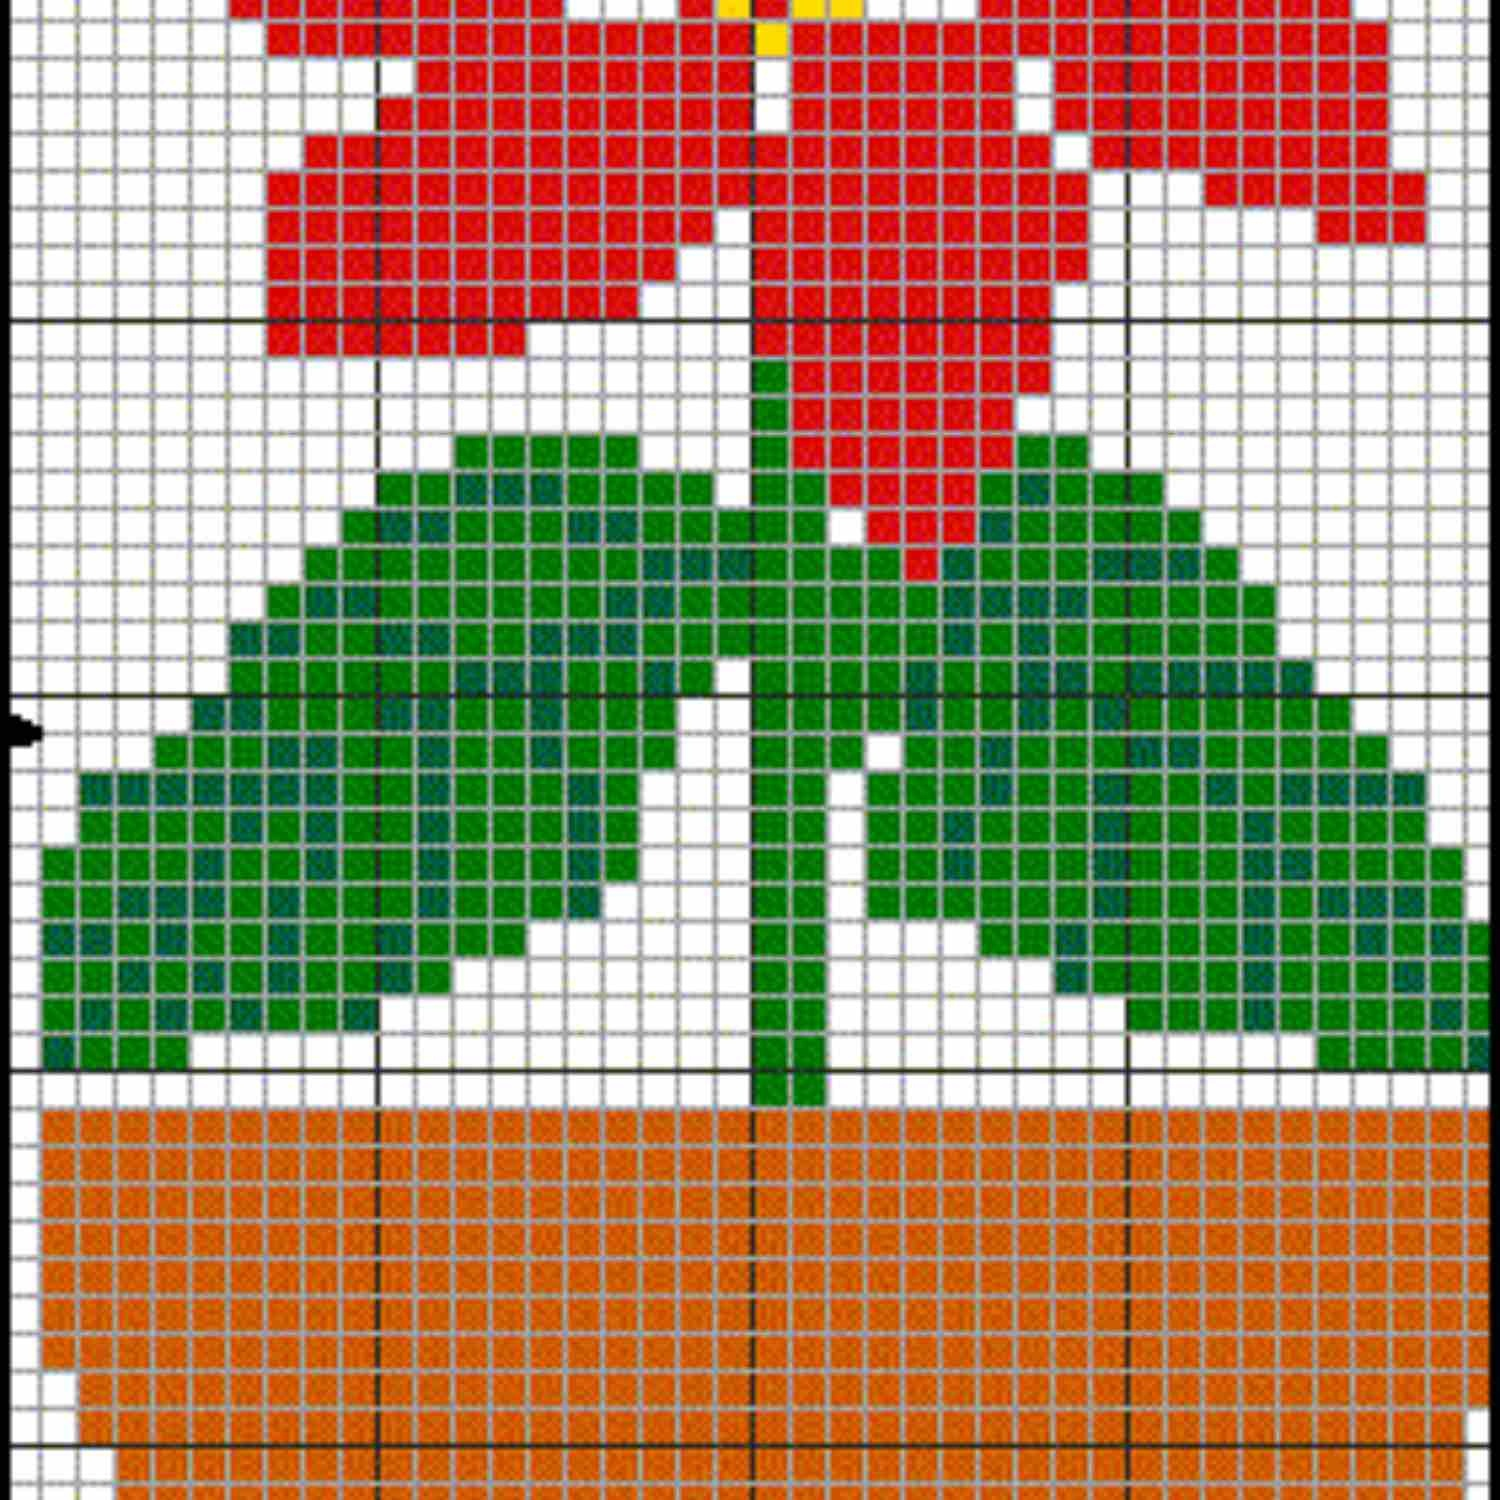 Free Christmas Themed Cross Stitch Patterns - Printable Plastic Canvas Patterns Free Online